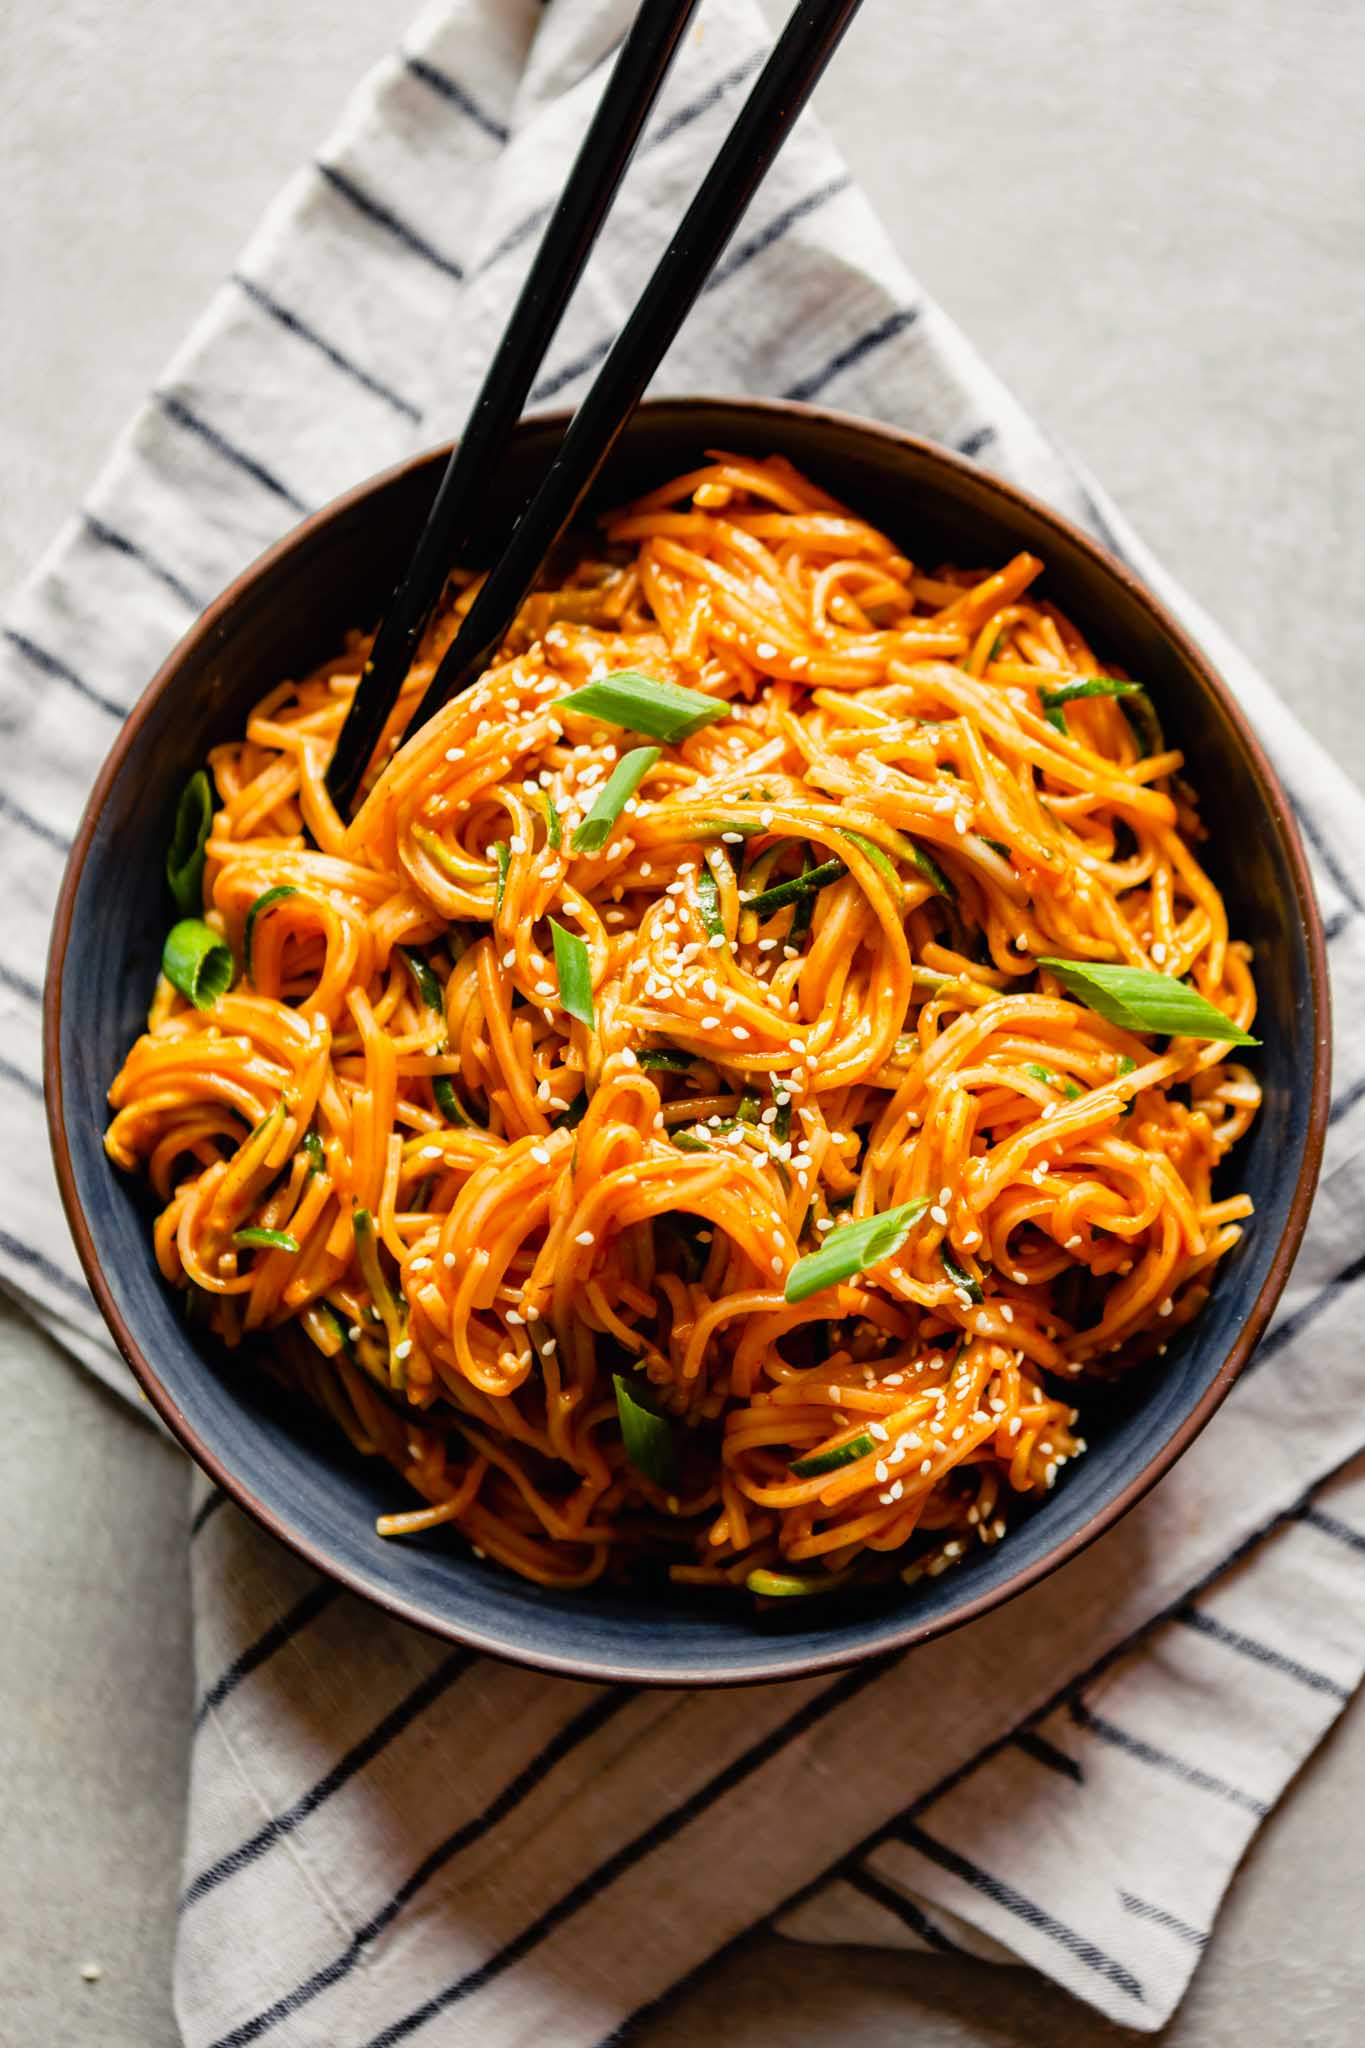 Overhead image of bright orange noodles with gochujang sauce in a dark blue bowl set on a striped napkin.